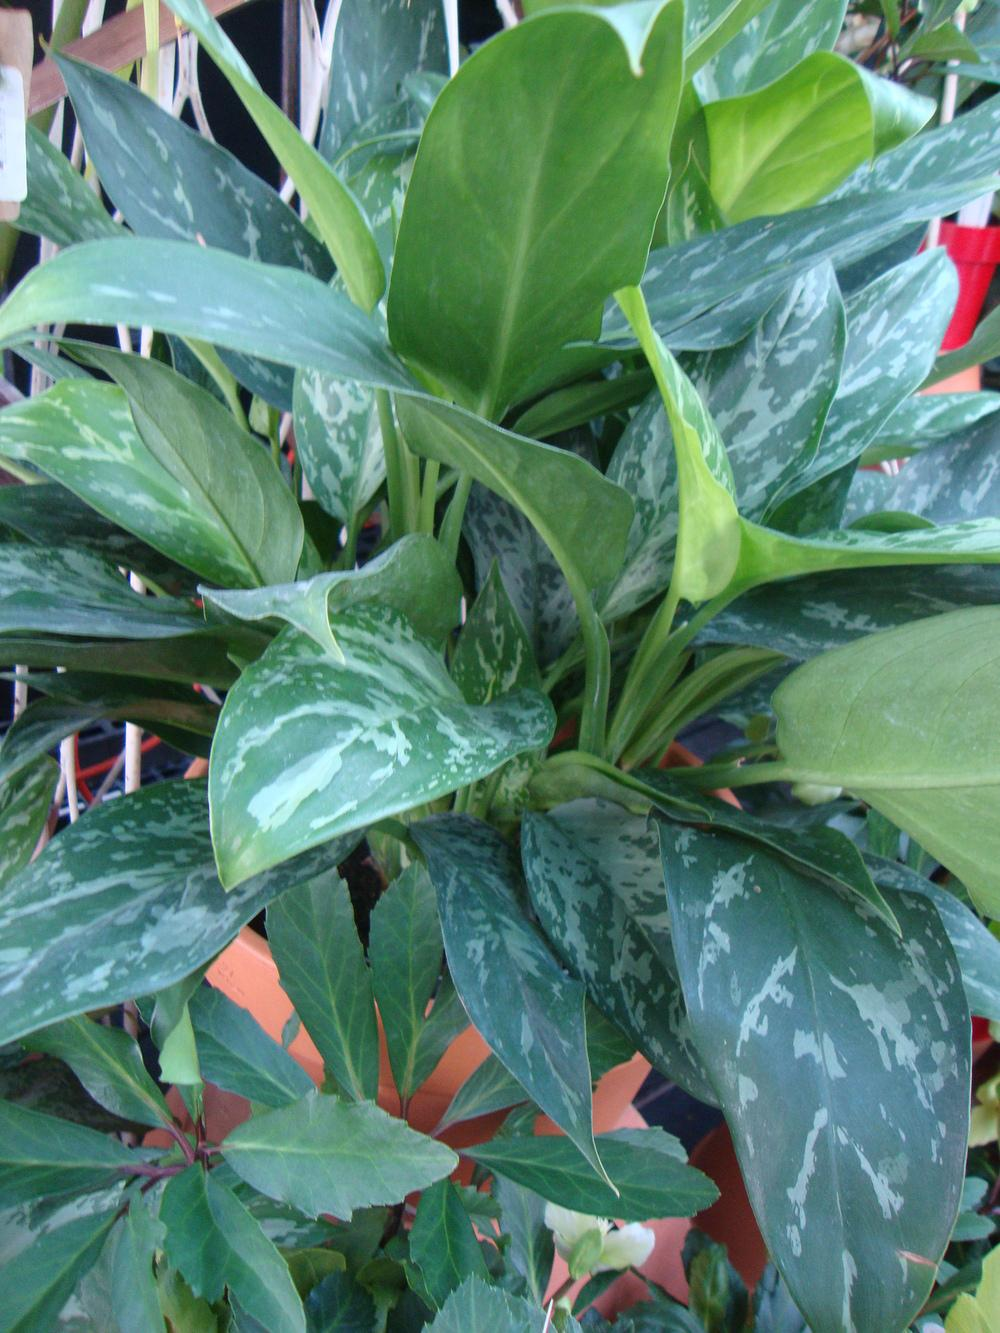 Photo of Aglaonemas (Aglaonema) uploaded by Paul2032